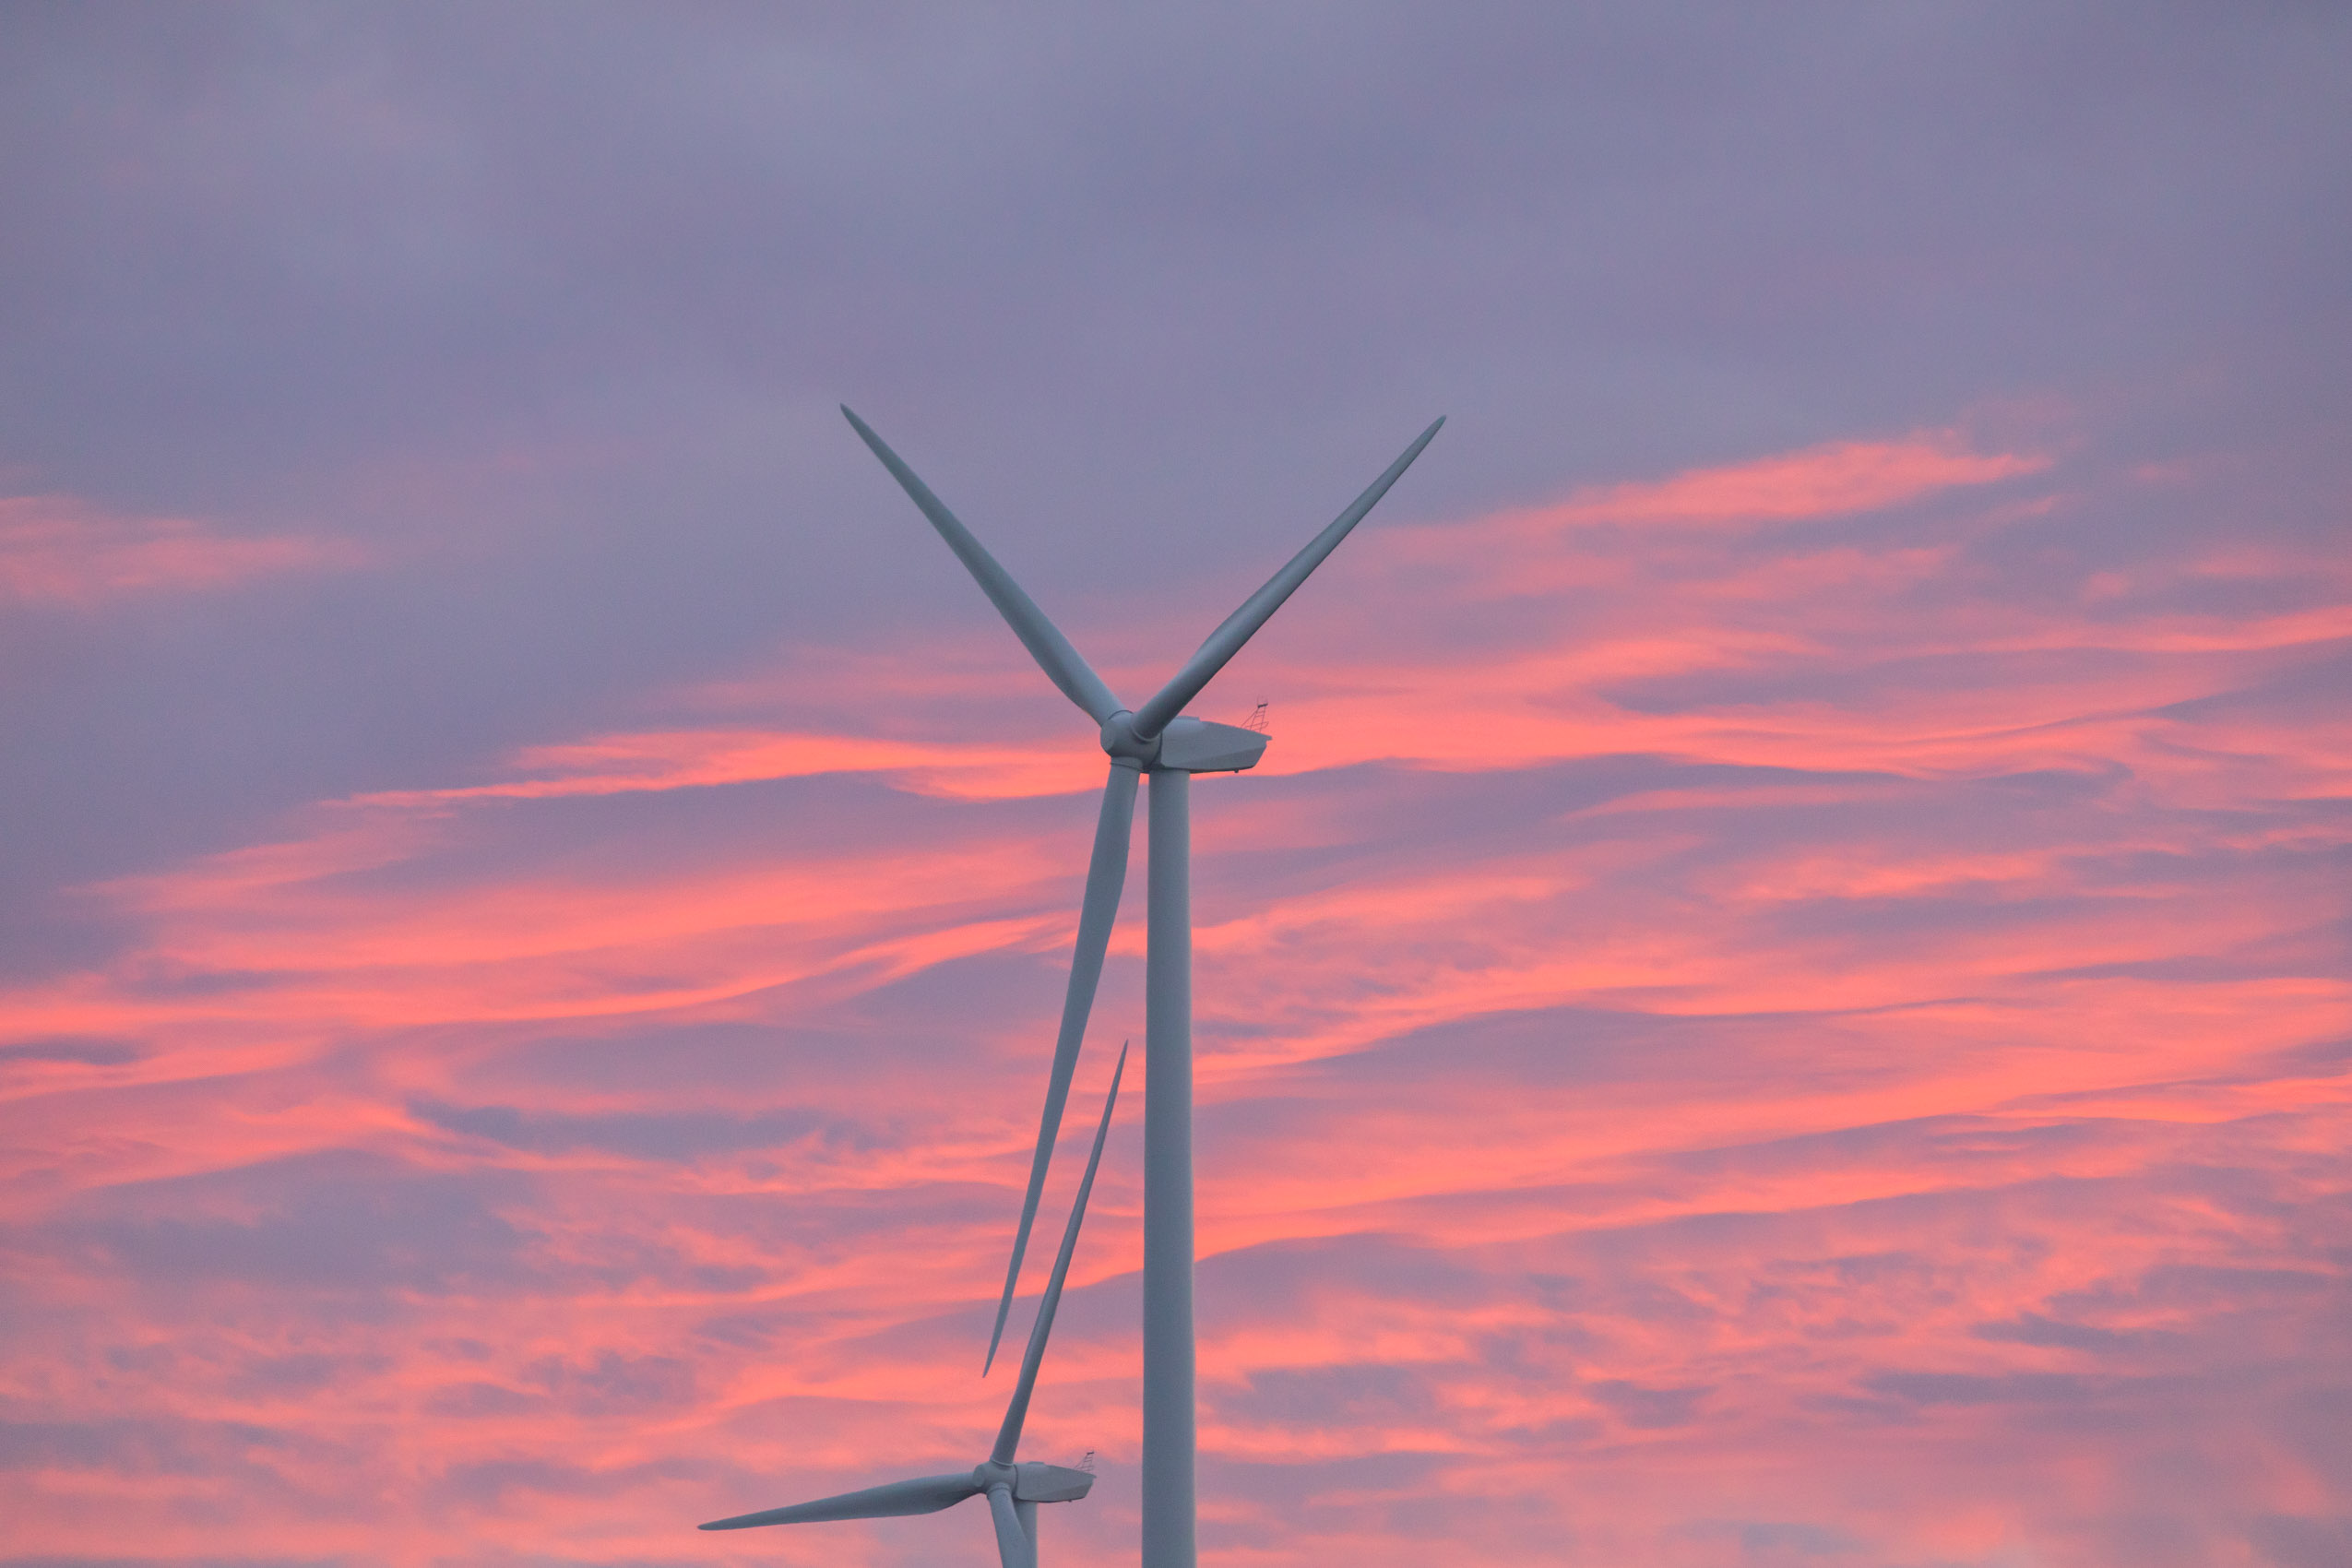 siemens wind turbine at sunrise